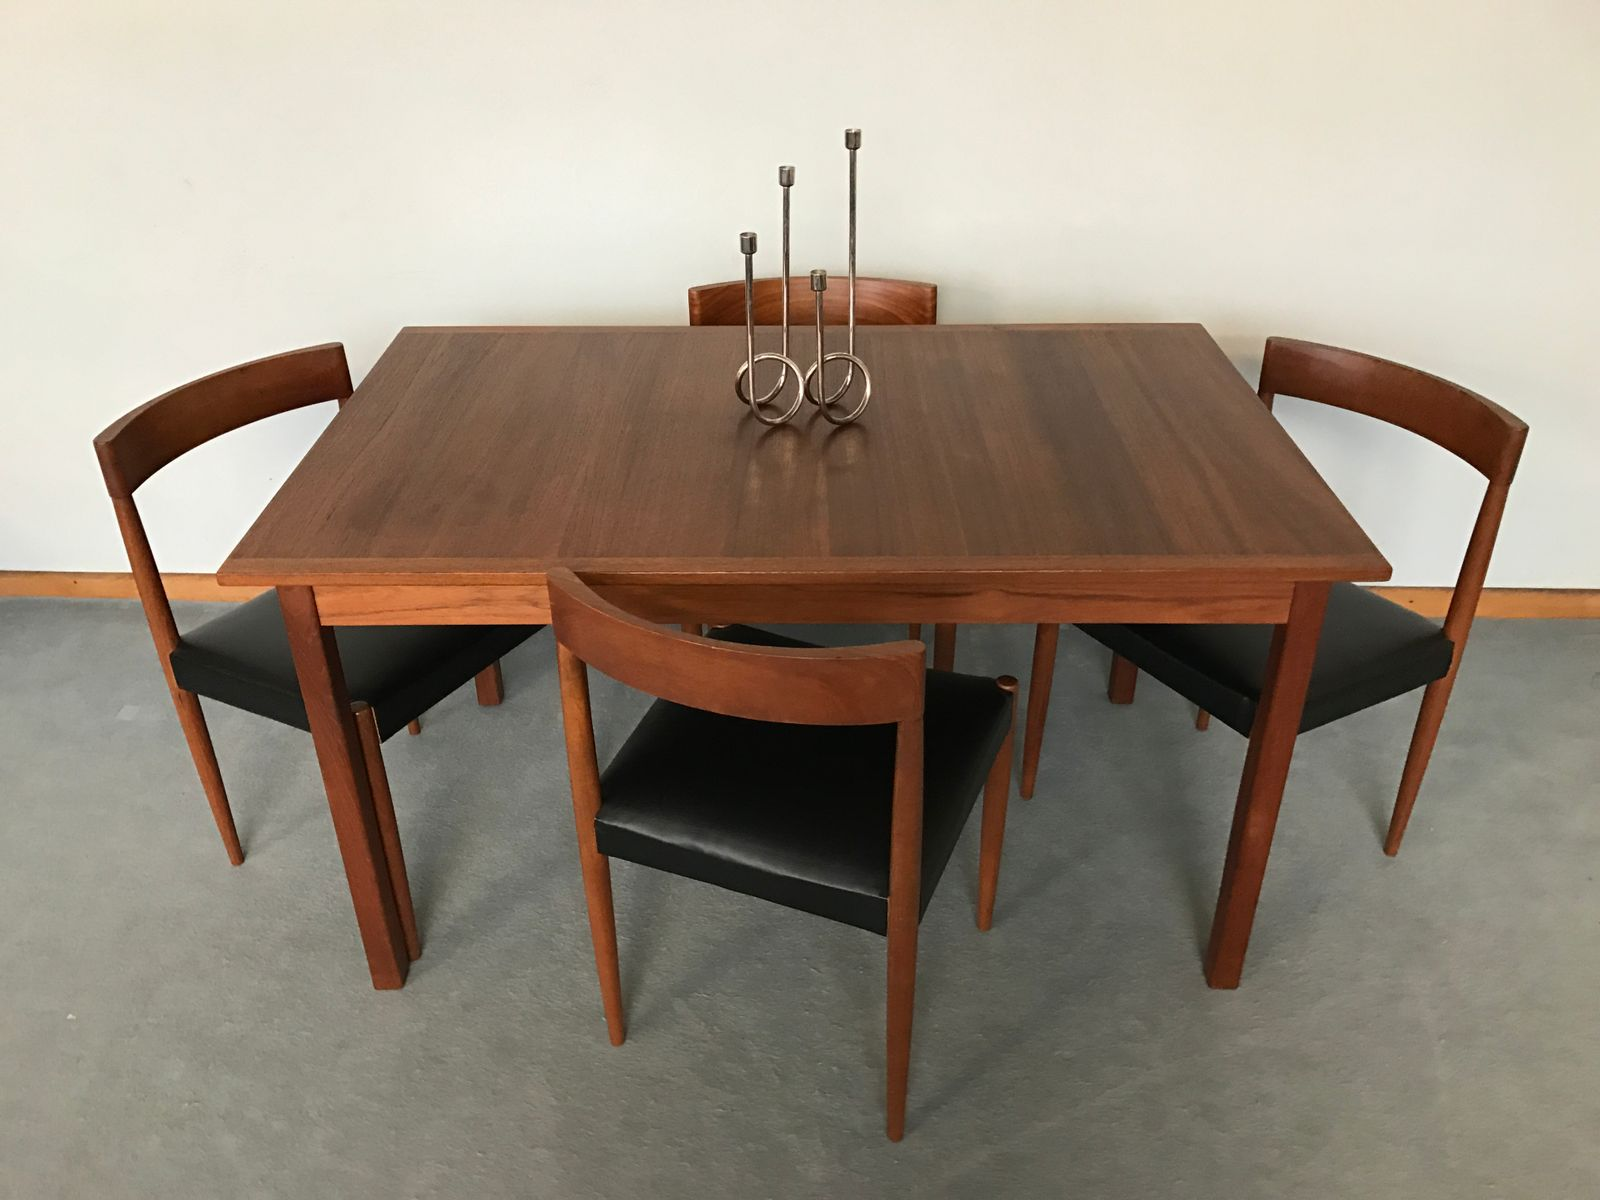 Vintage scandinavian teak dining table by nils jonsson for sale at pamono - Dining table scandinavian ...